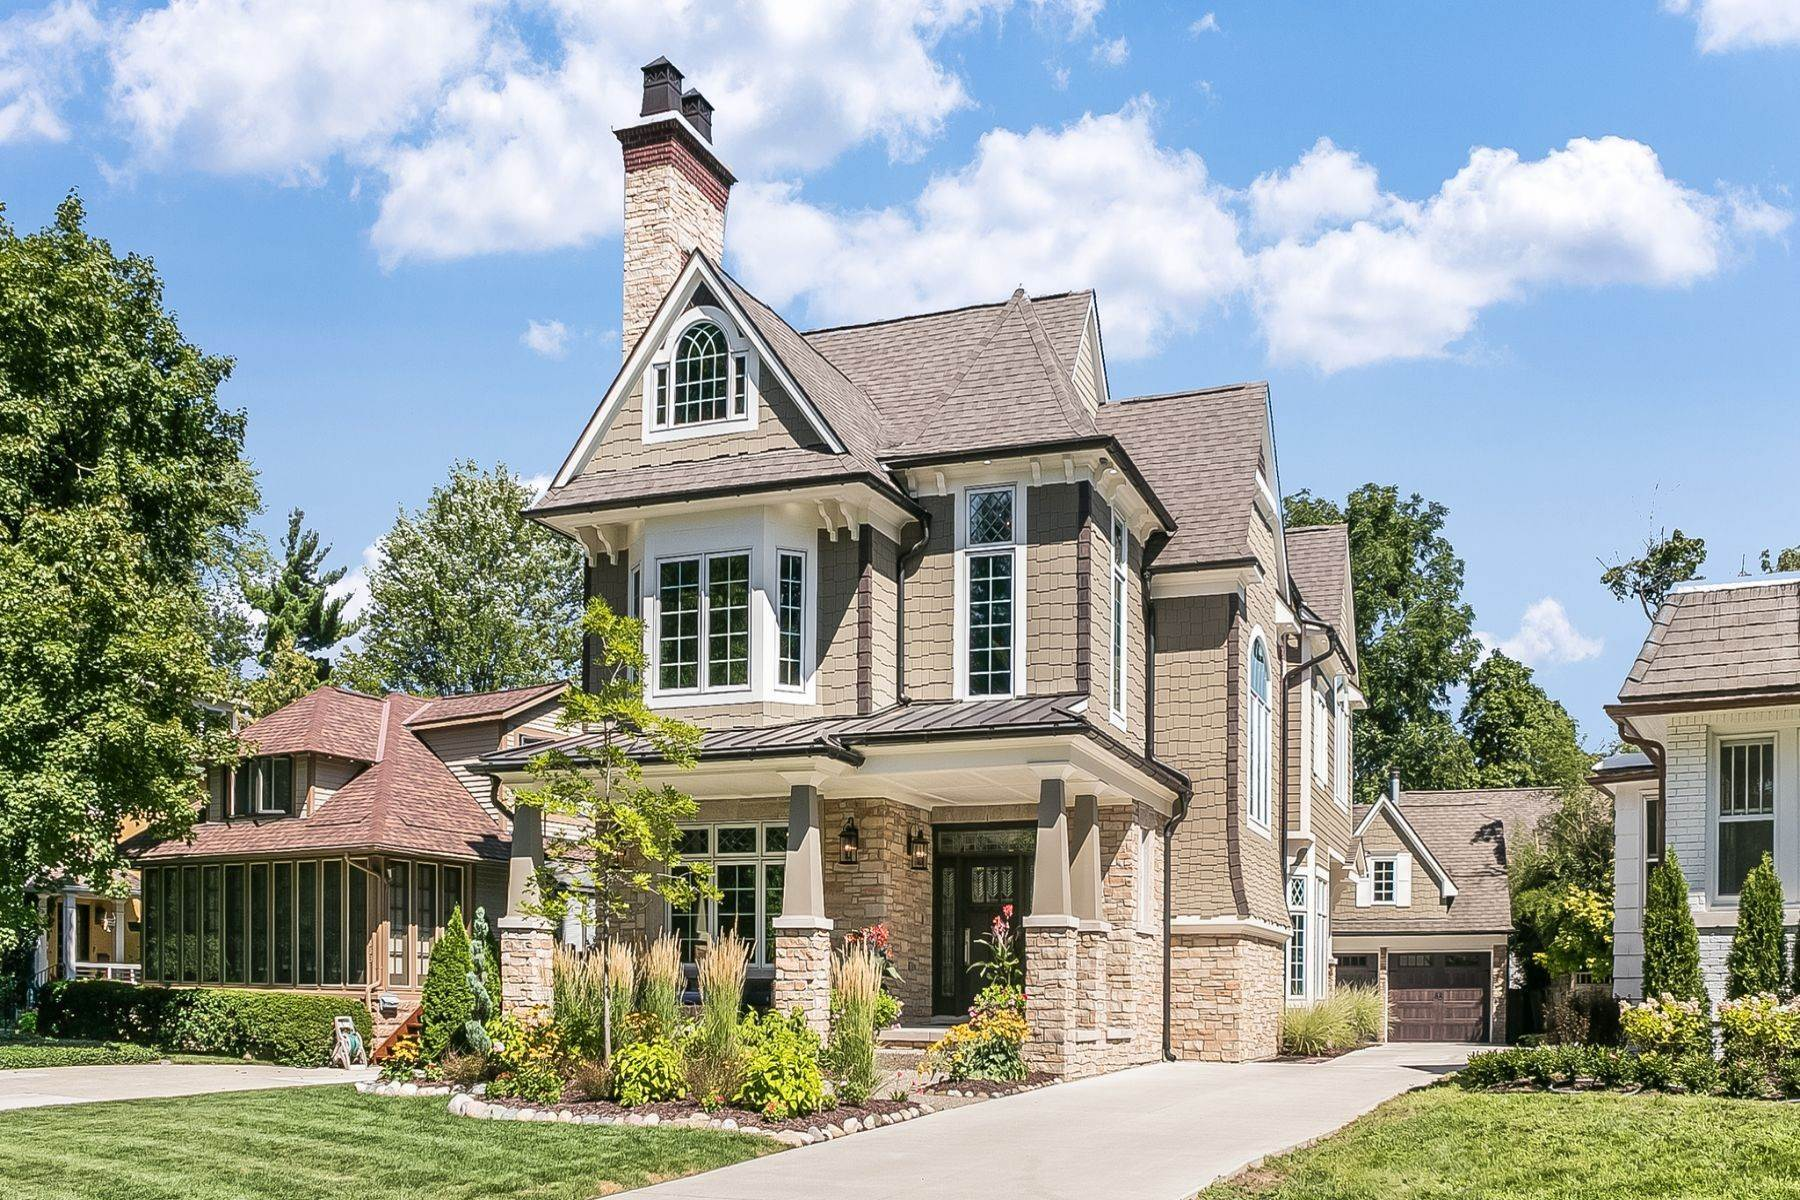 Single Family Homes for Sale at Birmingham 909 Southfield Rd, Birmingham, Michigan 48009 United States